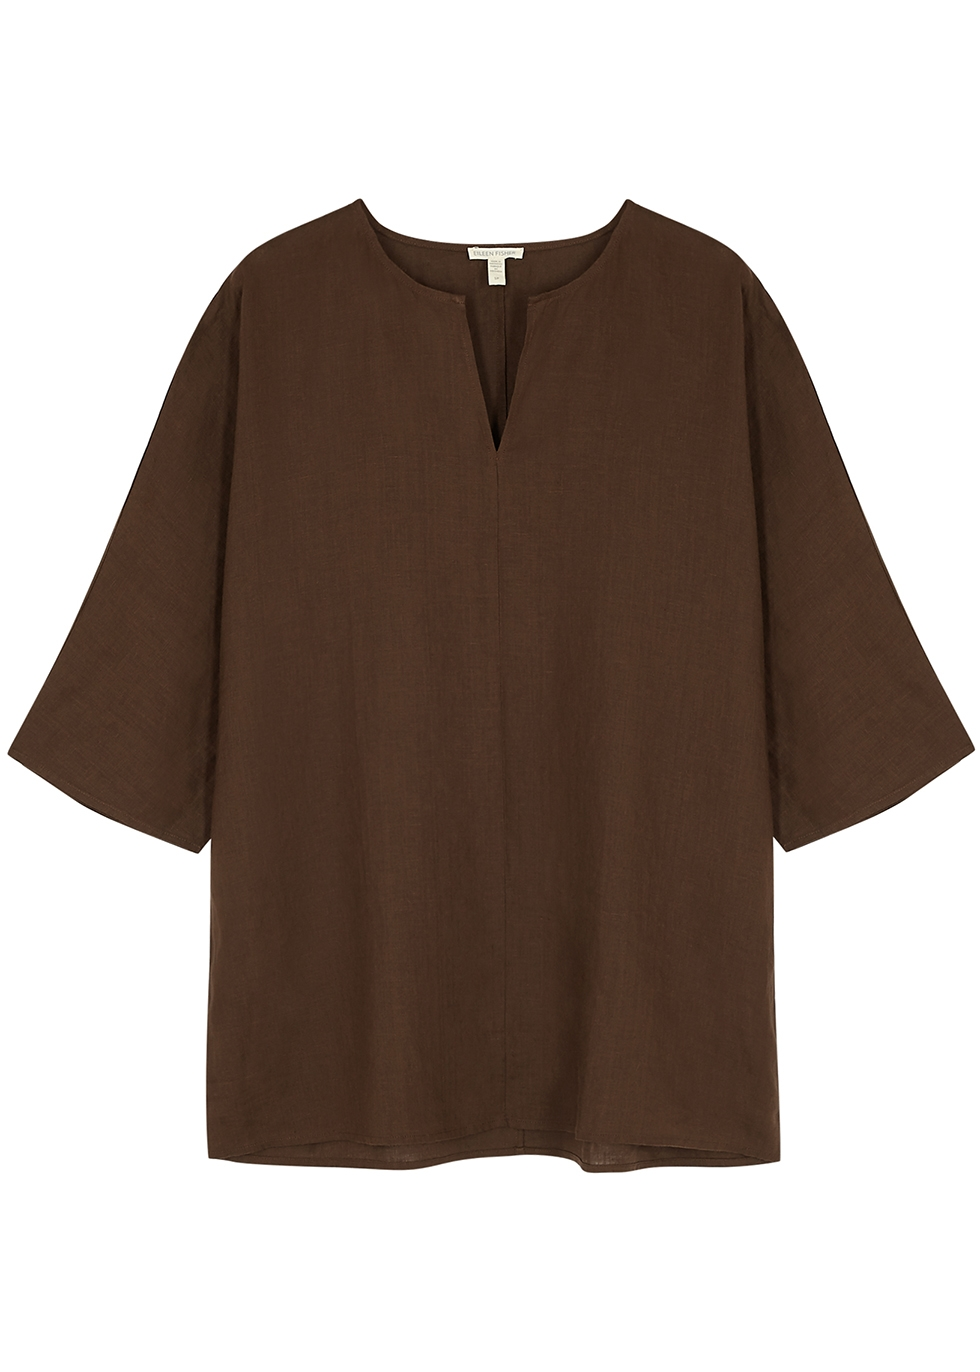 Brown organic linen top